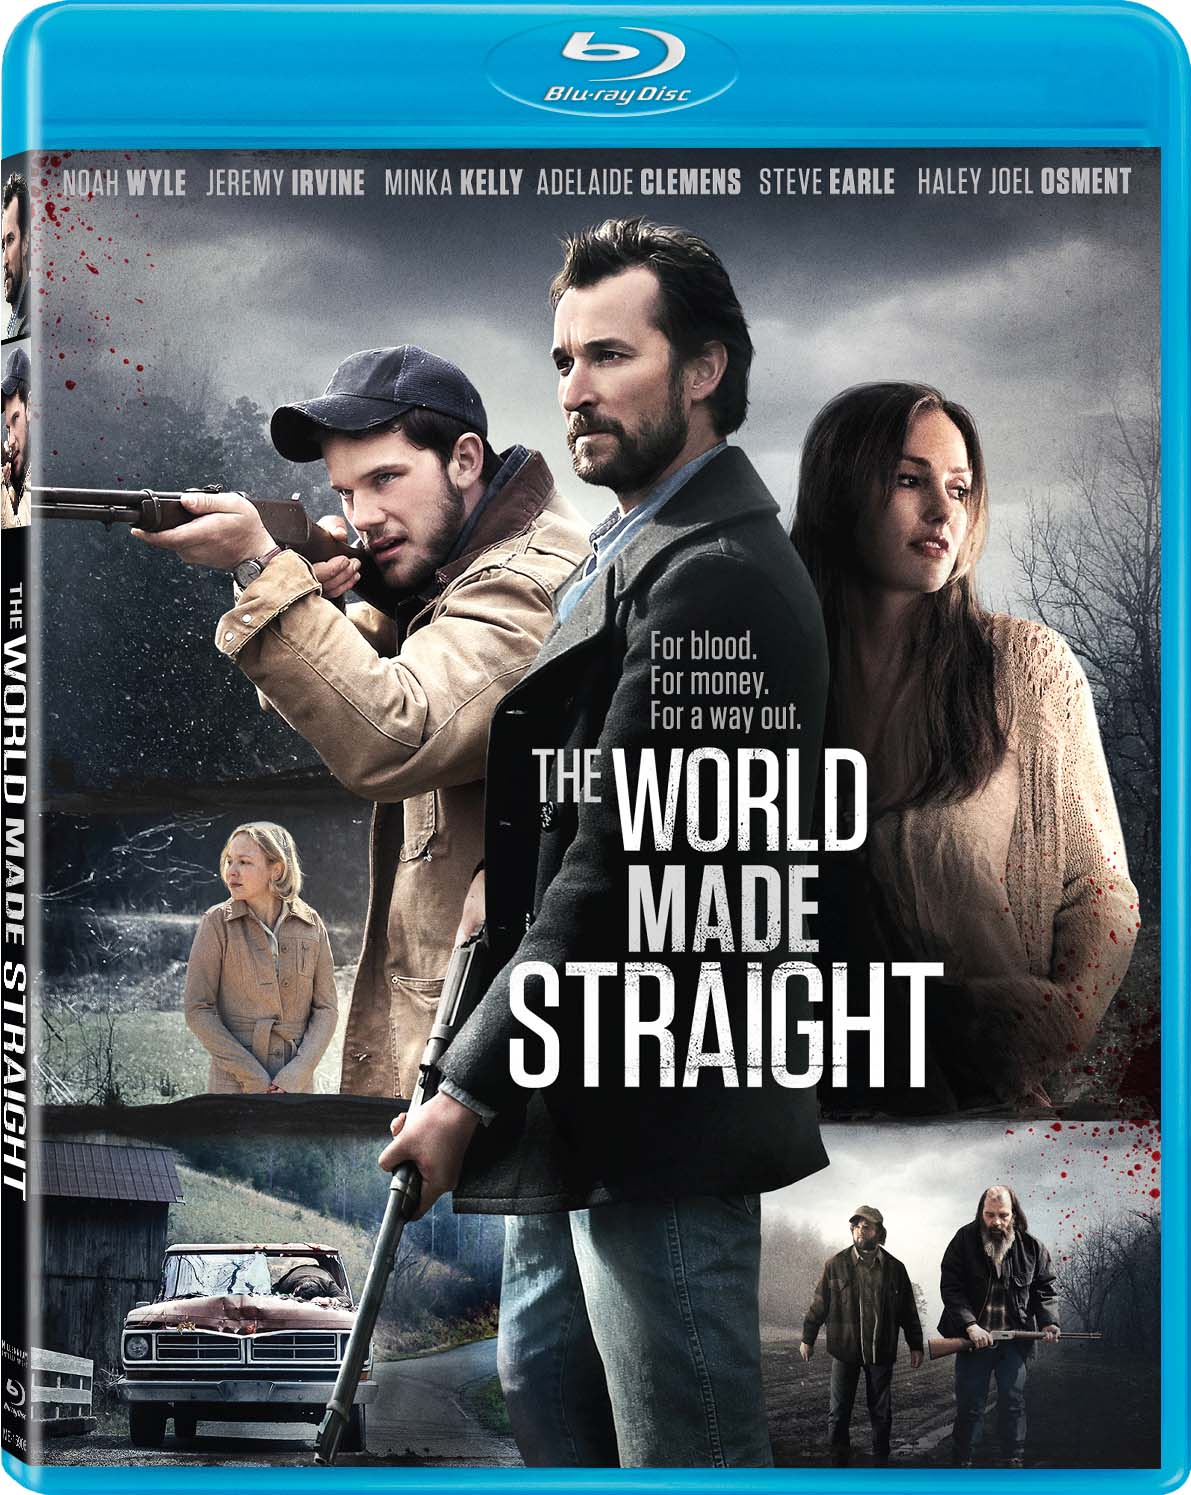 THE WORLD MADE STRAIGHT Blu-ray